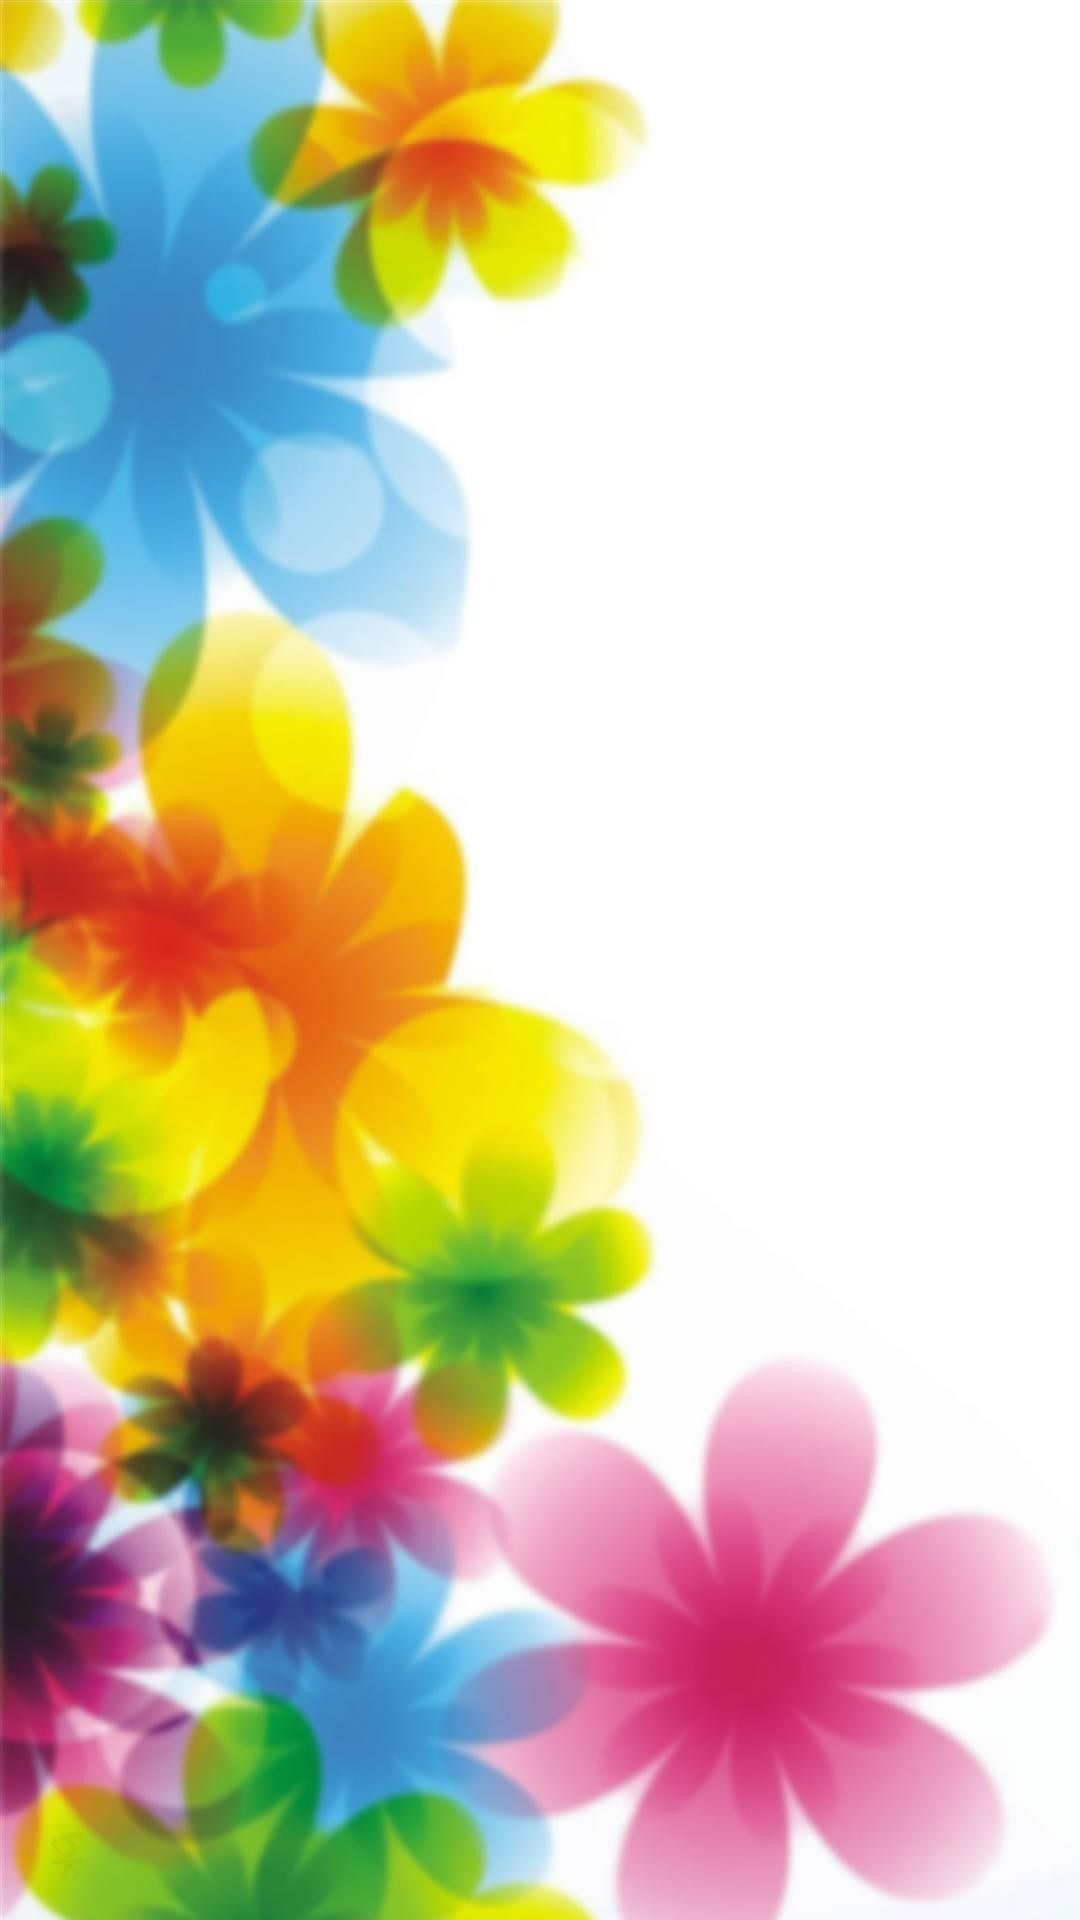 Free Colorful Flower Wallpaper Downloads: Colorful Floral Print IPhone Wallpaper